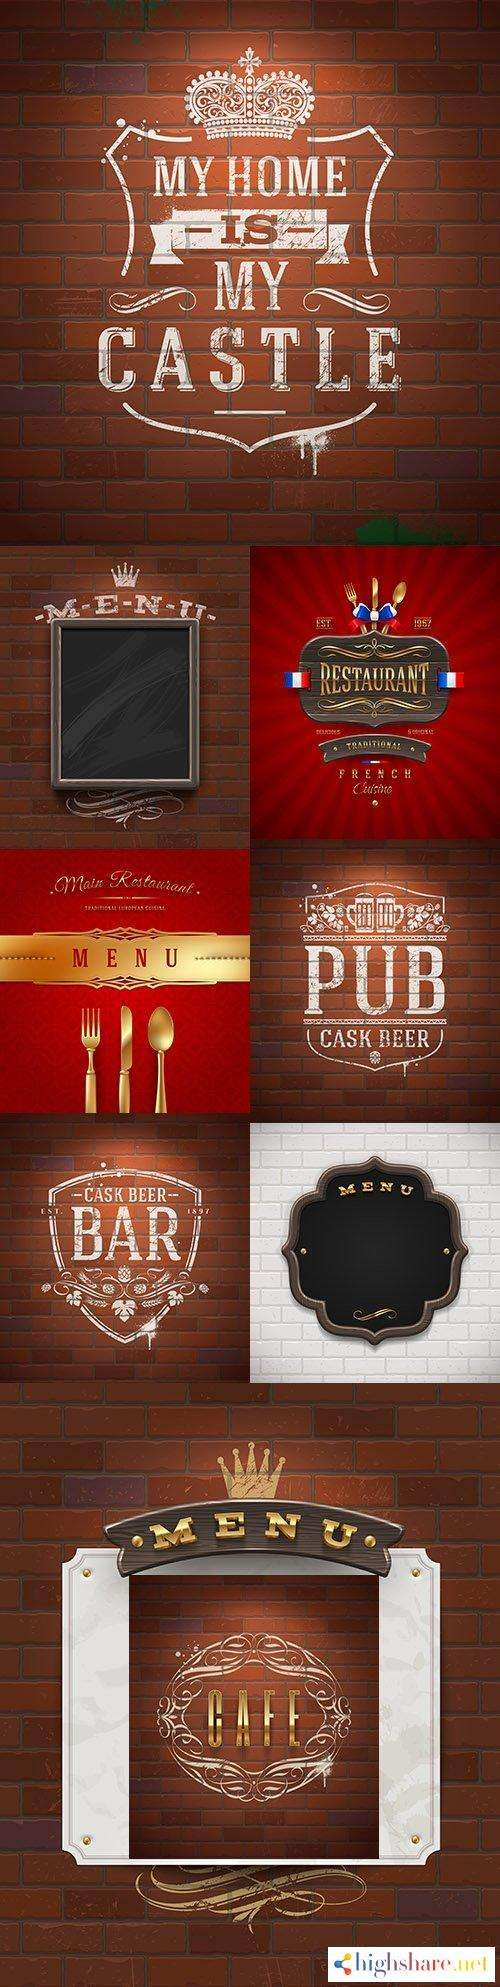 bar and menu painted with white paint on brick wall 5f41ffe63698b - Bar and menu painted with white paint on brick wall